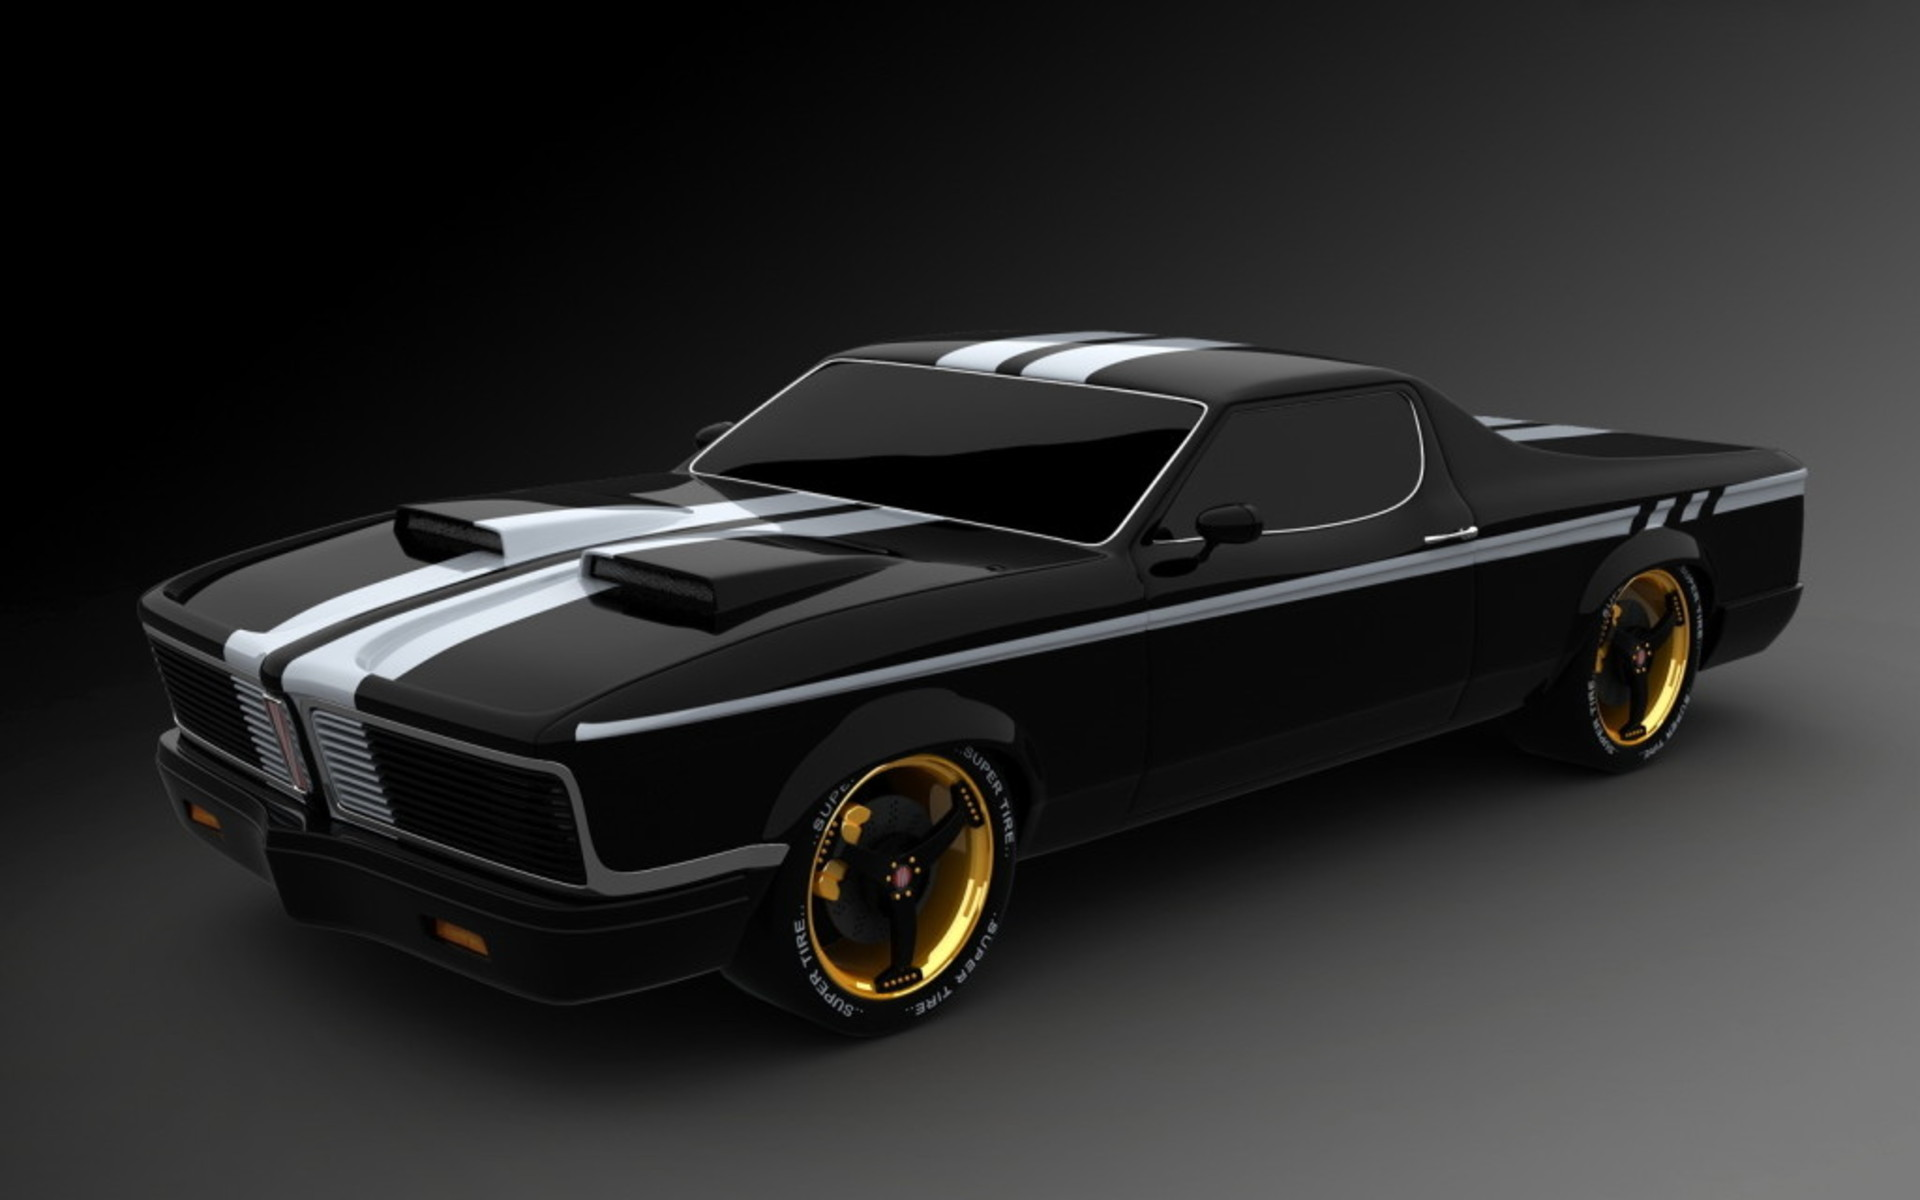 american_muscle_car_wallpaper_images_free_hd